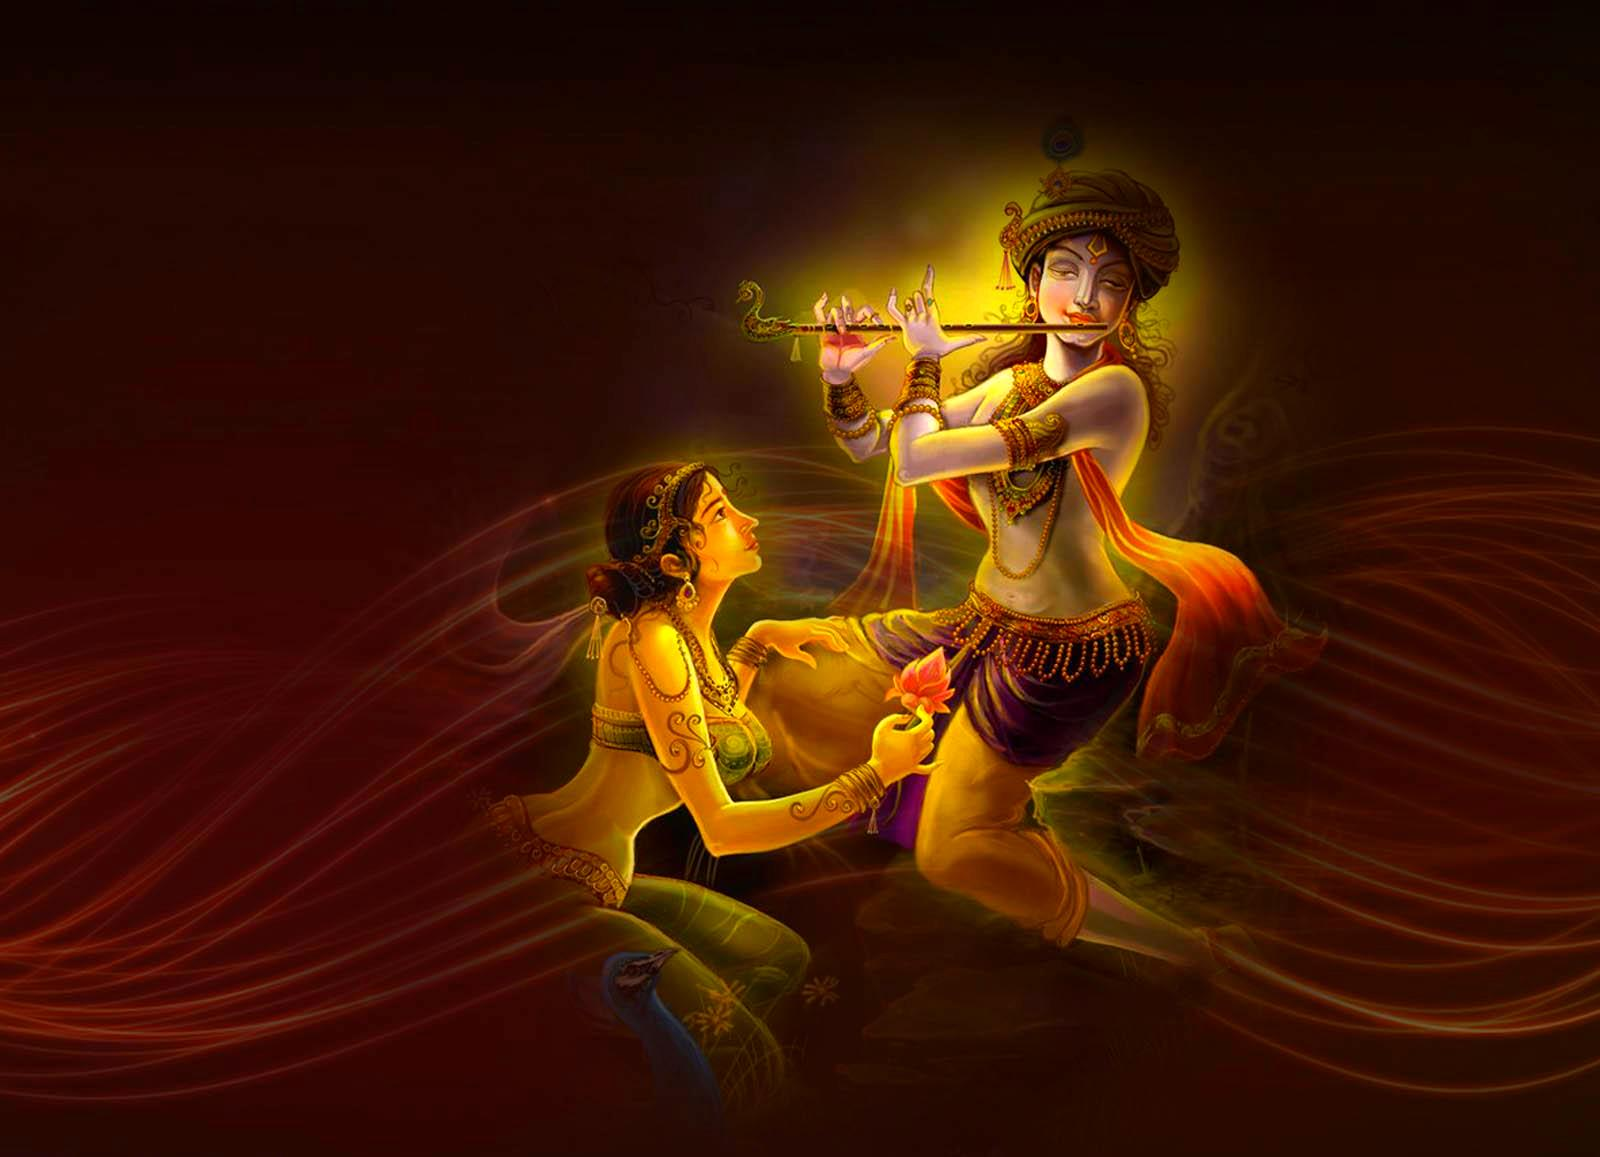 Lord Krishna HD Wallpapers ~ God wallpaper hd